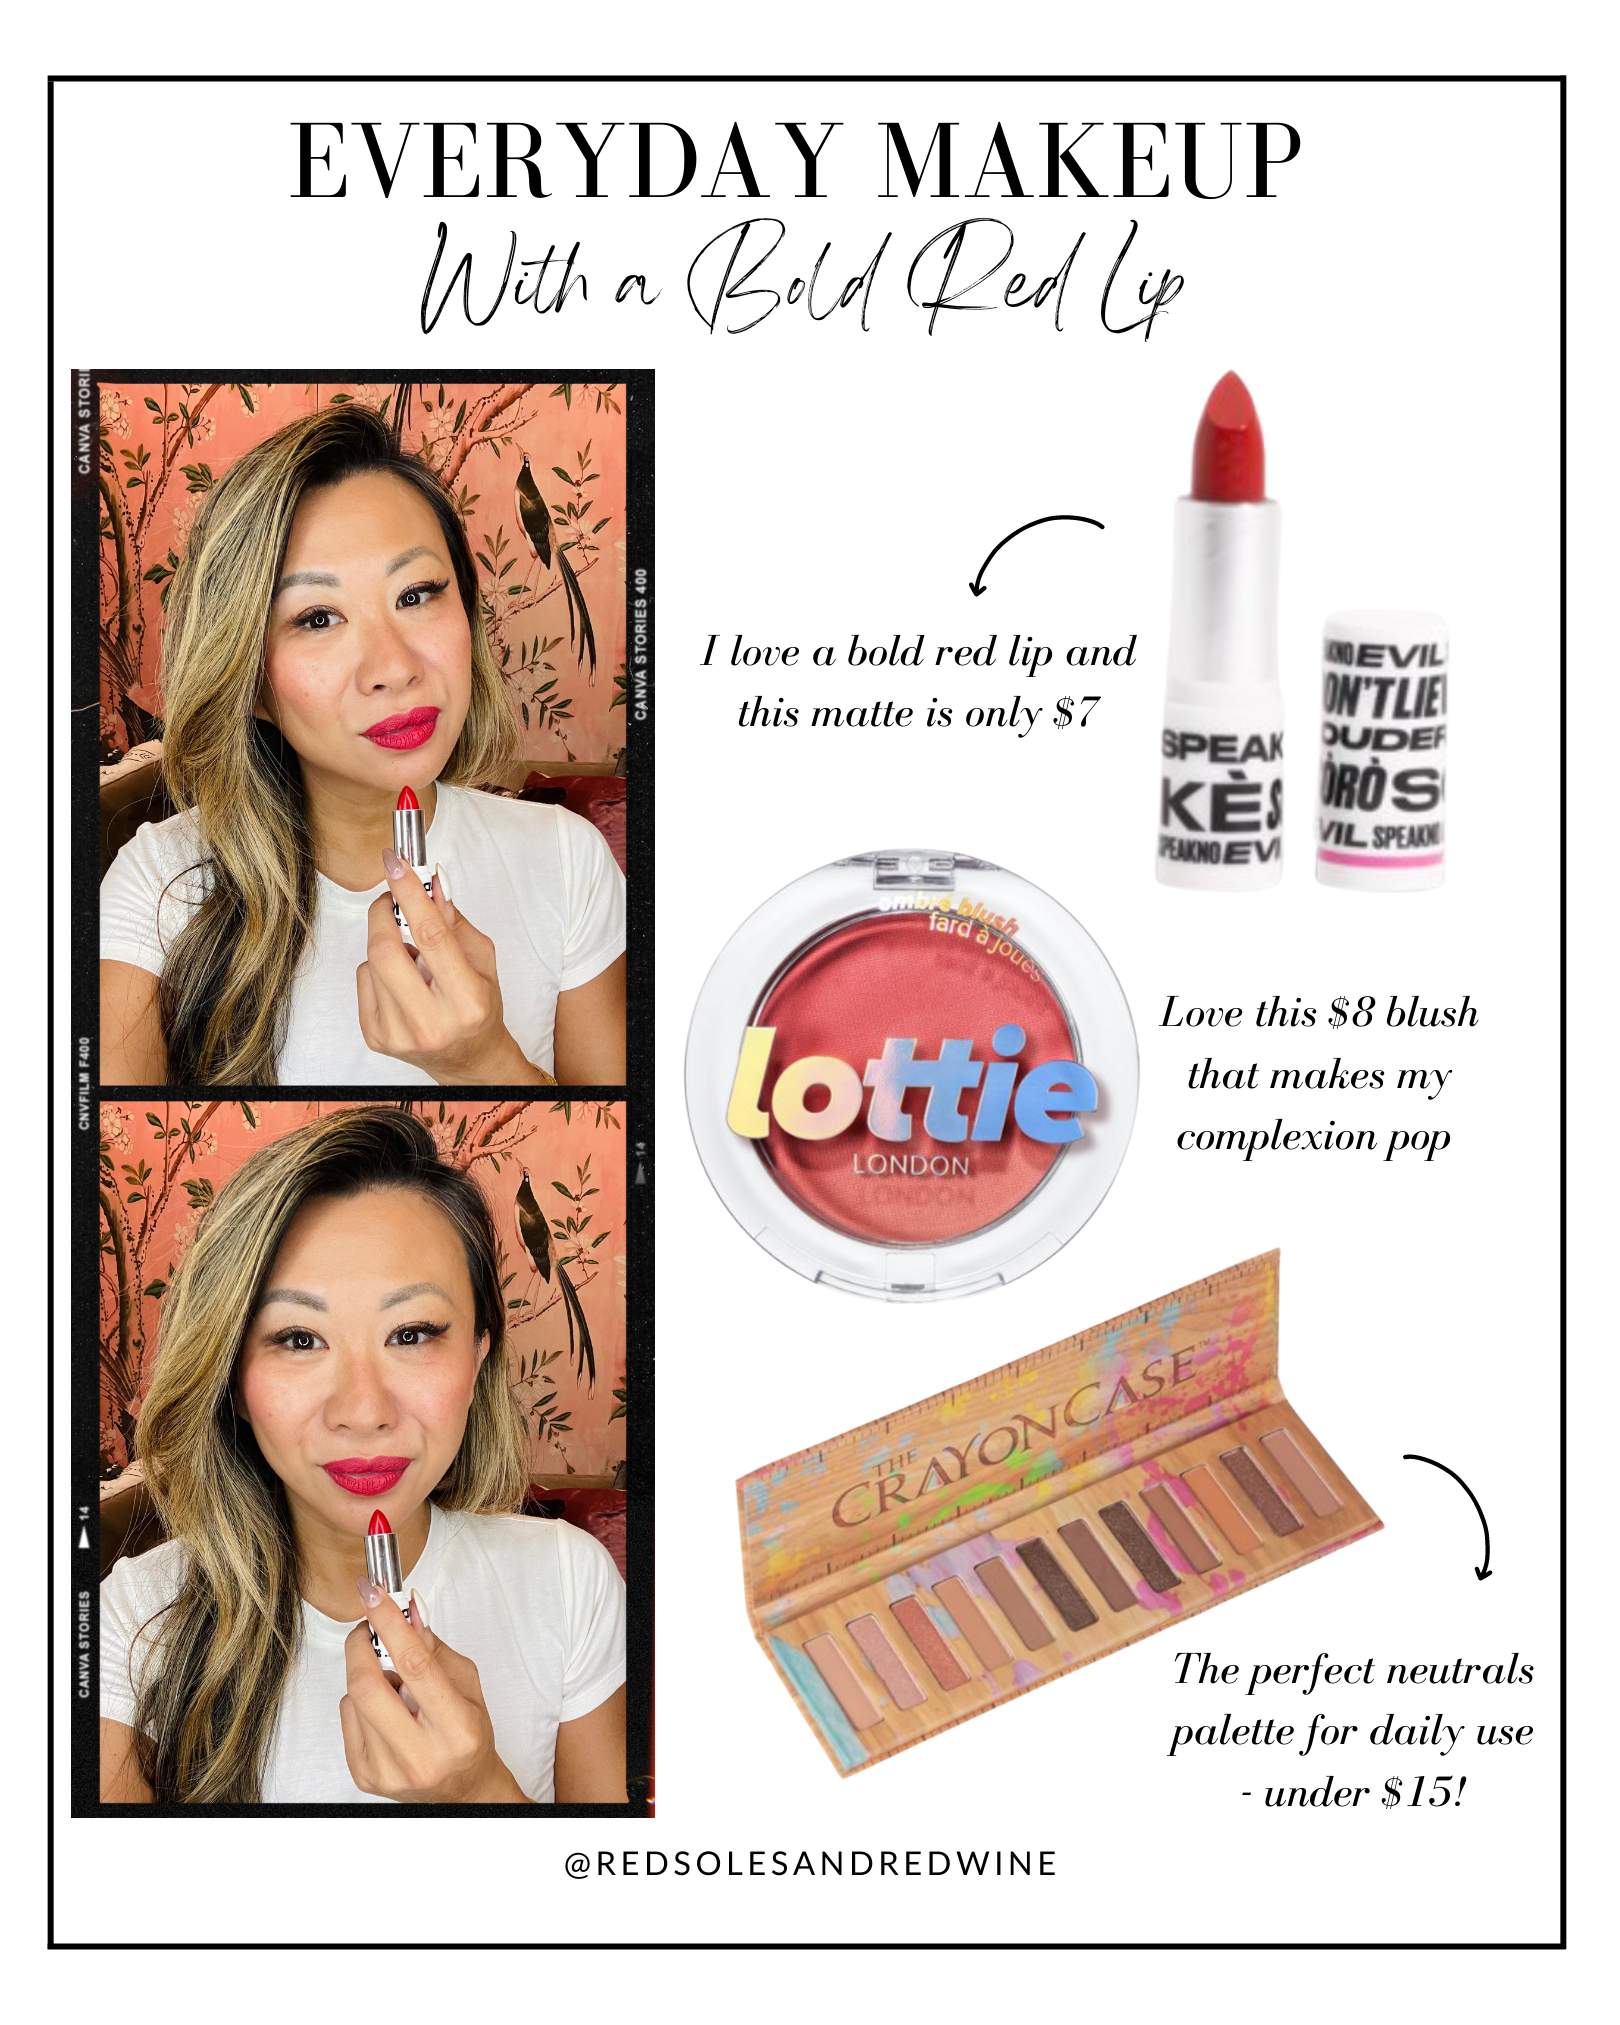 everyday makeup up with a bold red lip, everyday makeup, red lip makeup ideas, affordable makeup, walmart beauty, beauty routine